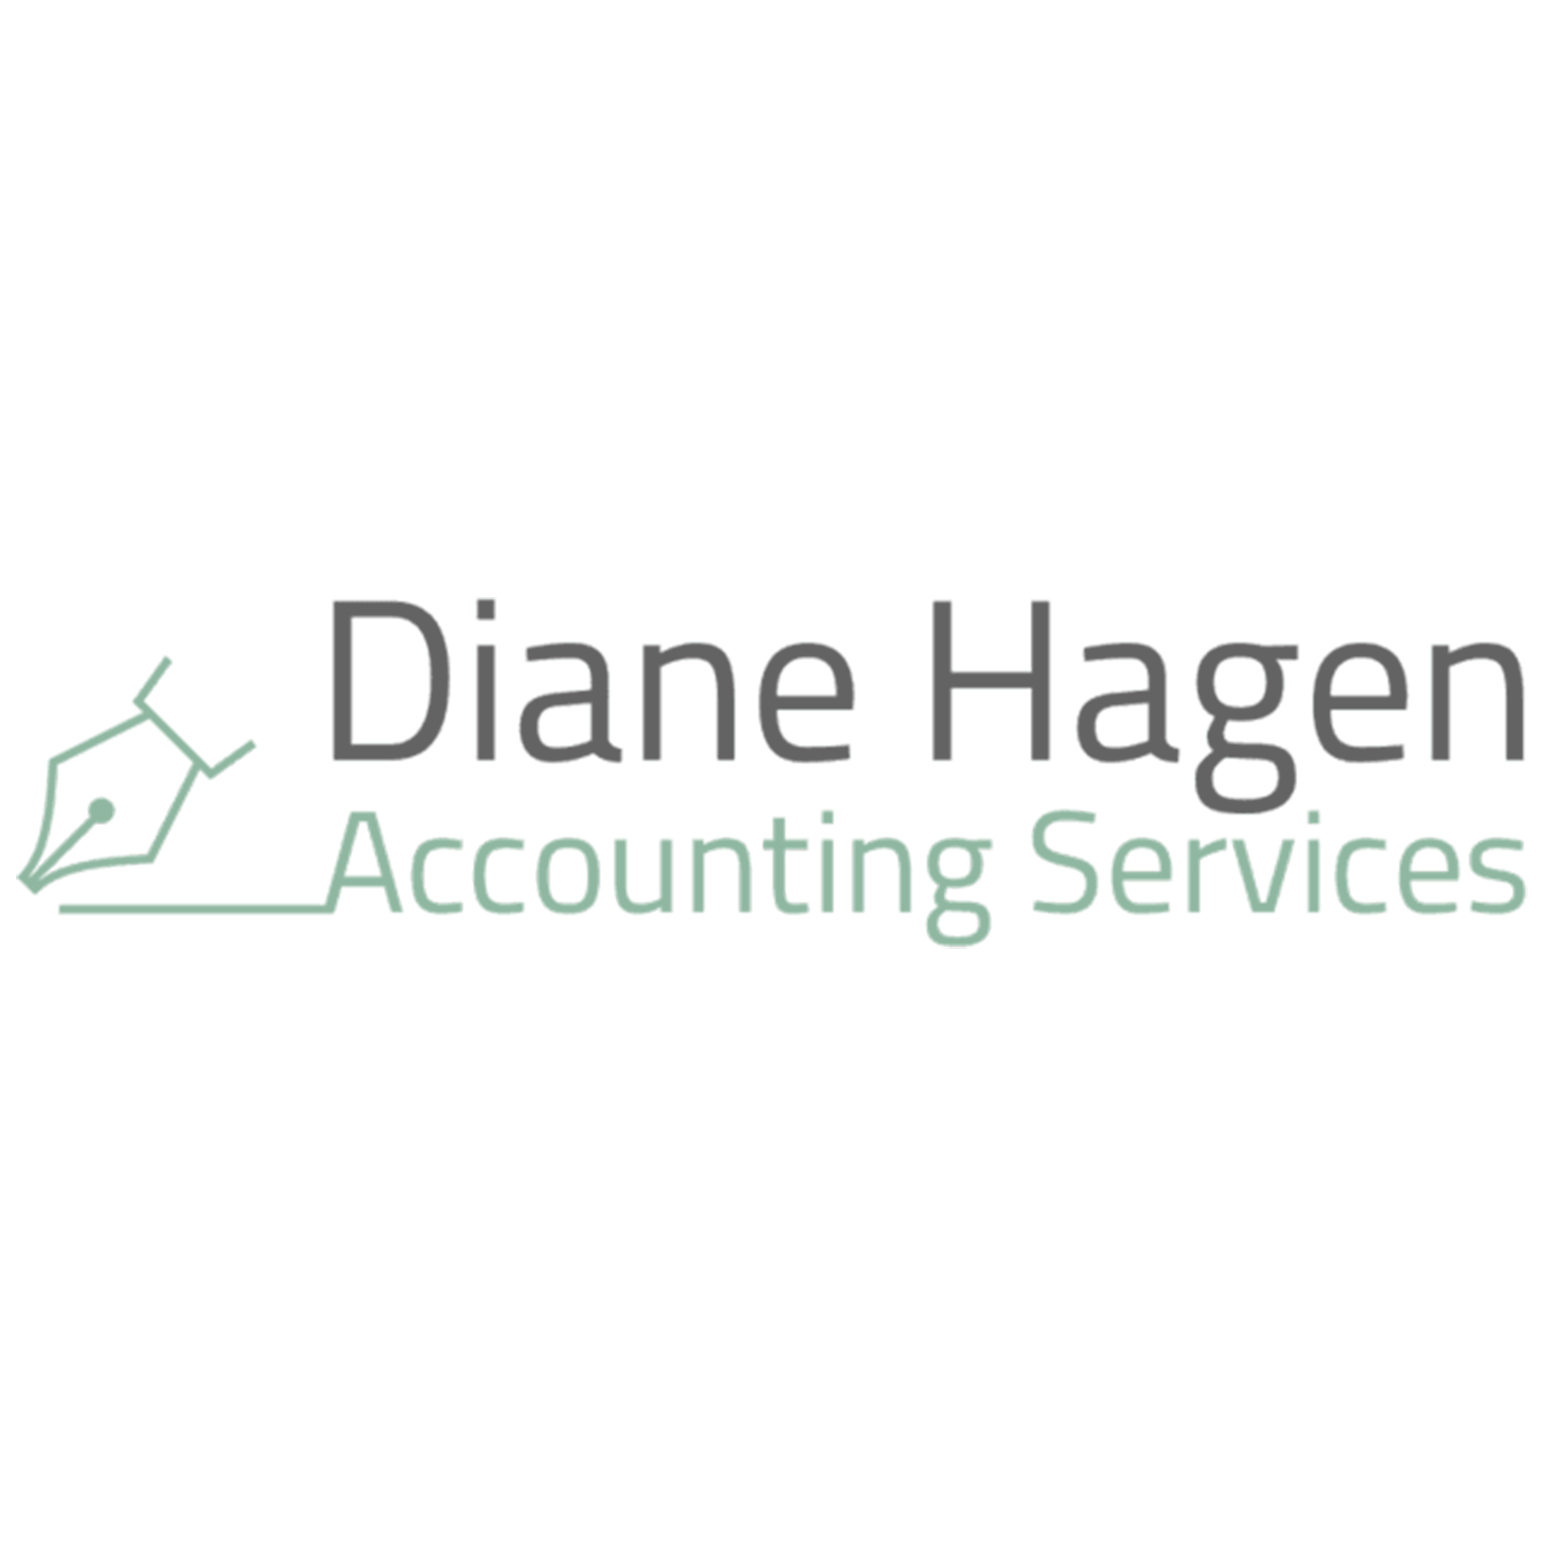 Diane Hagen Accounting Services